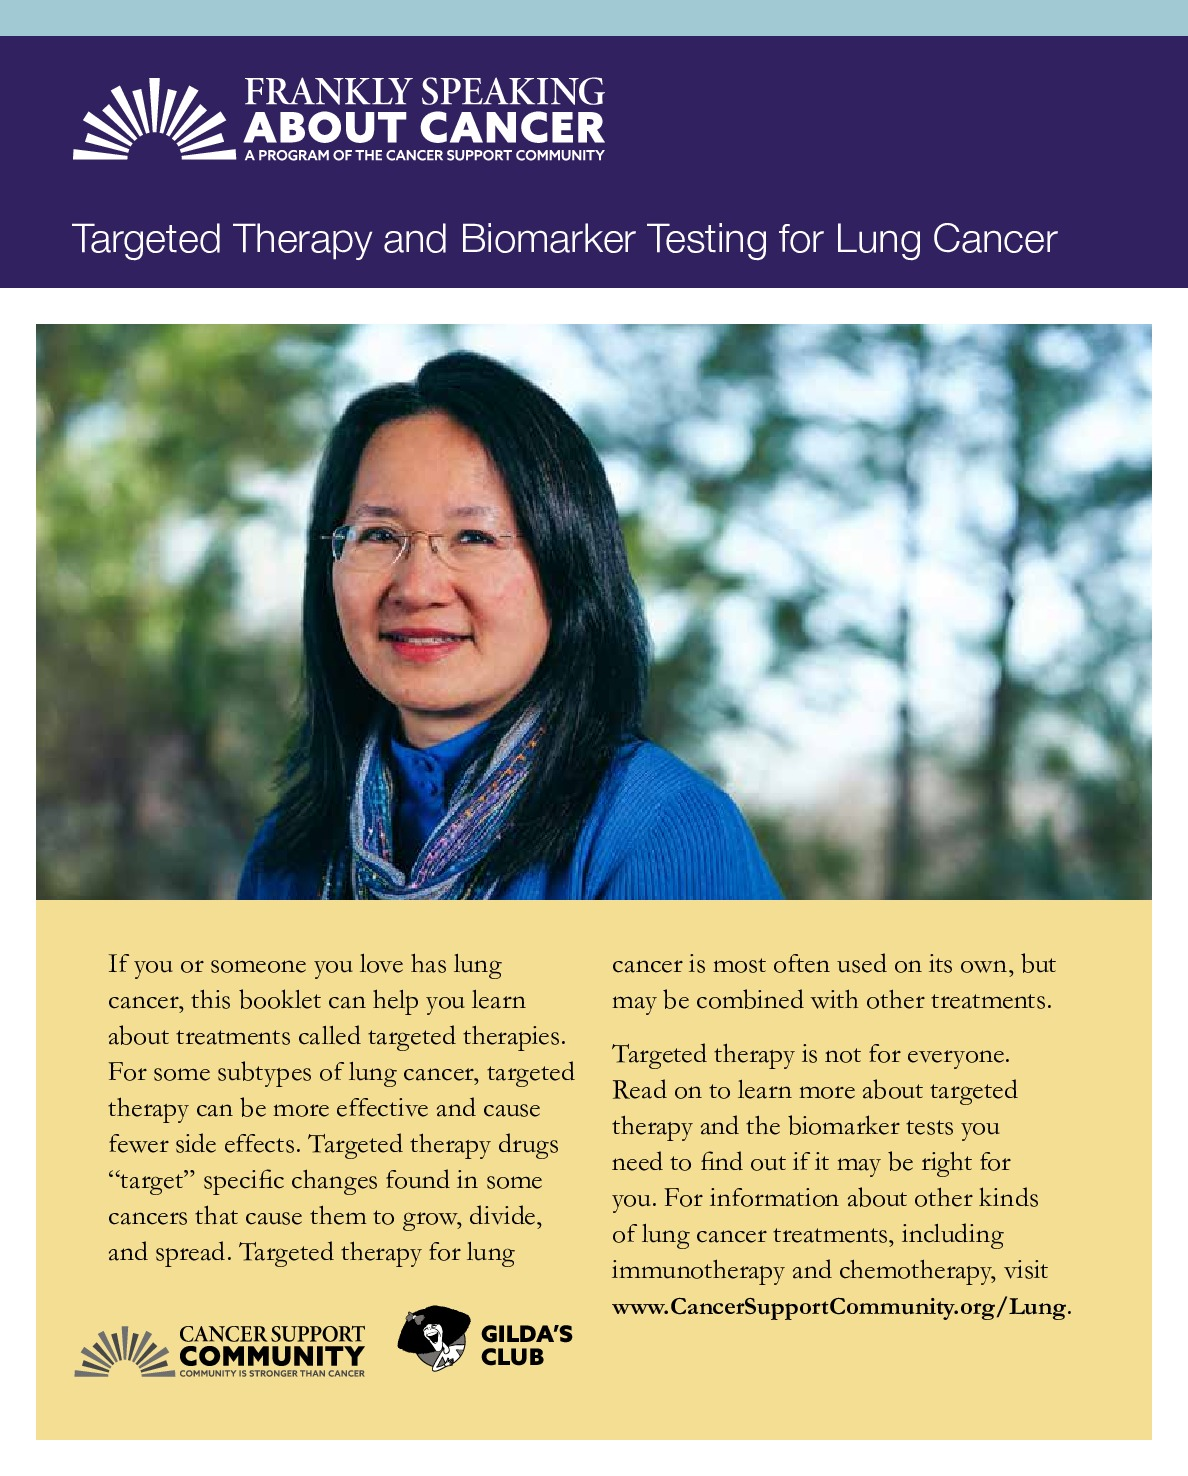 Targeted Therapy and Biomarker Testing for Lung Cancer